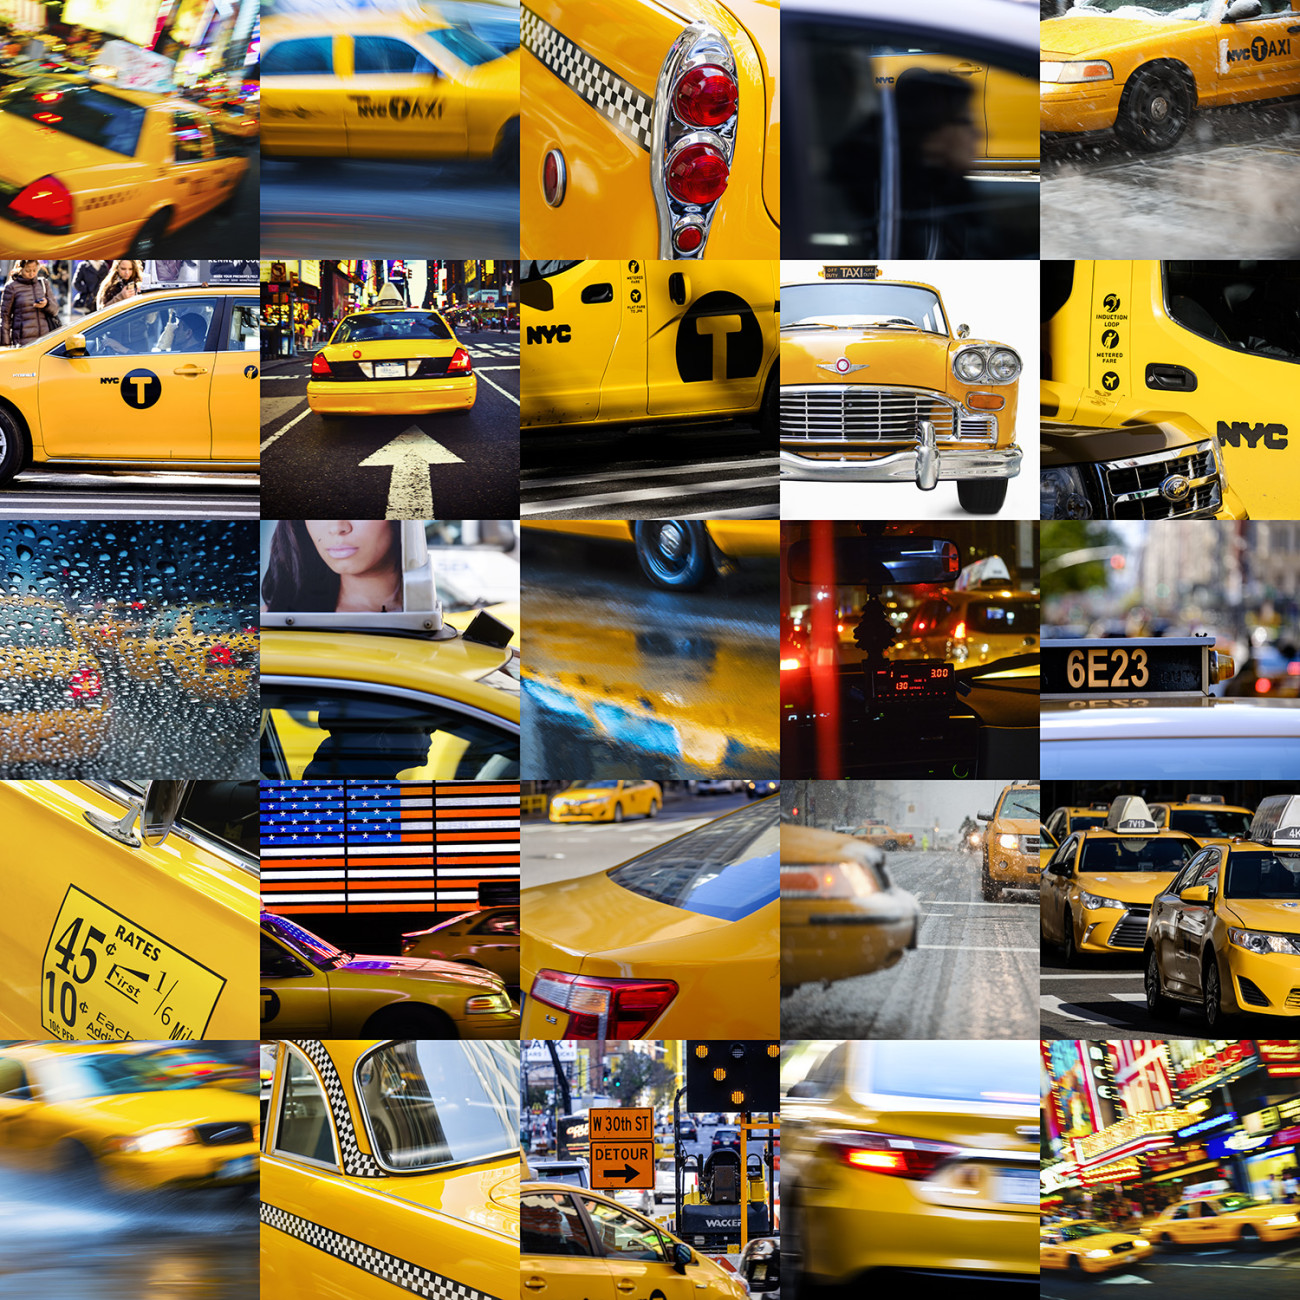 Taxi!, New York, 2015